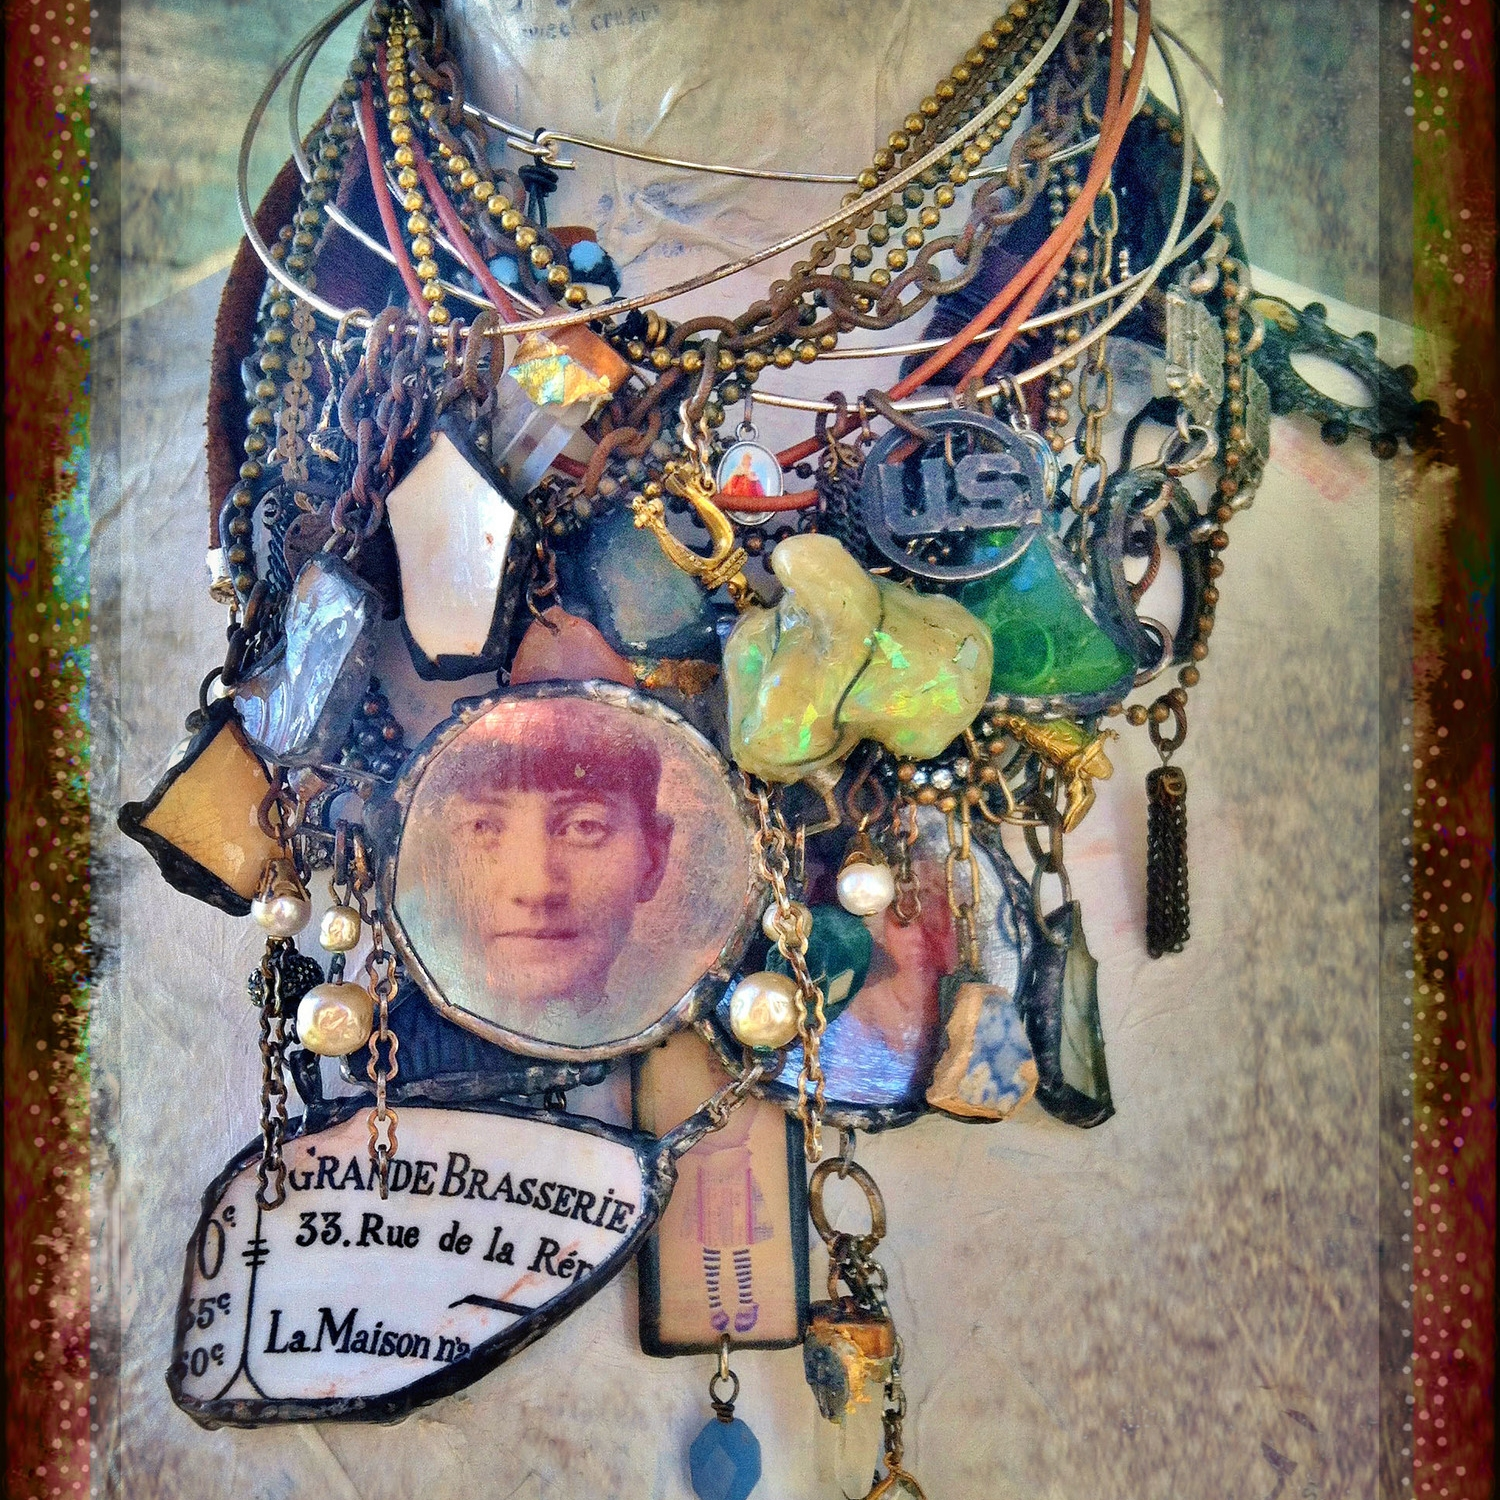 necklaces 2012-10-12 oct 12 2013 004.jpg